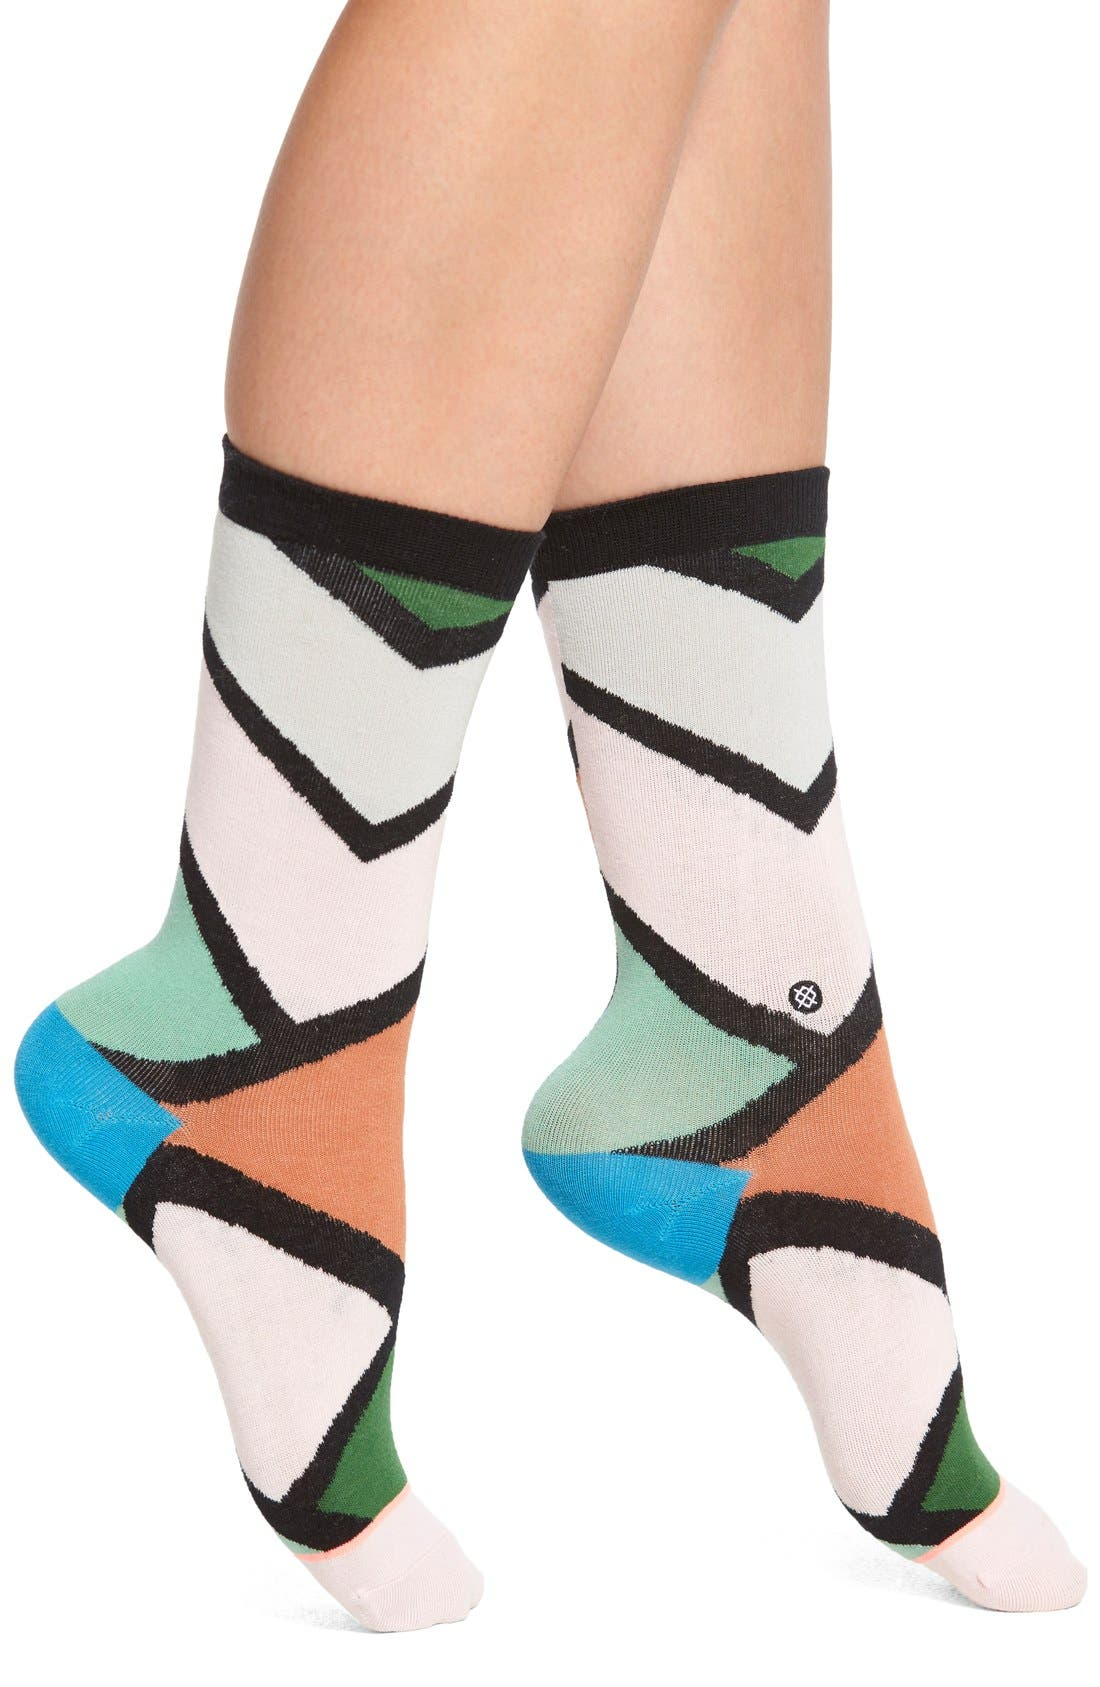 Alternate Image 1 Selected - Stance 'Steezy' Crew Socks